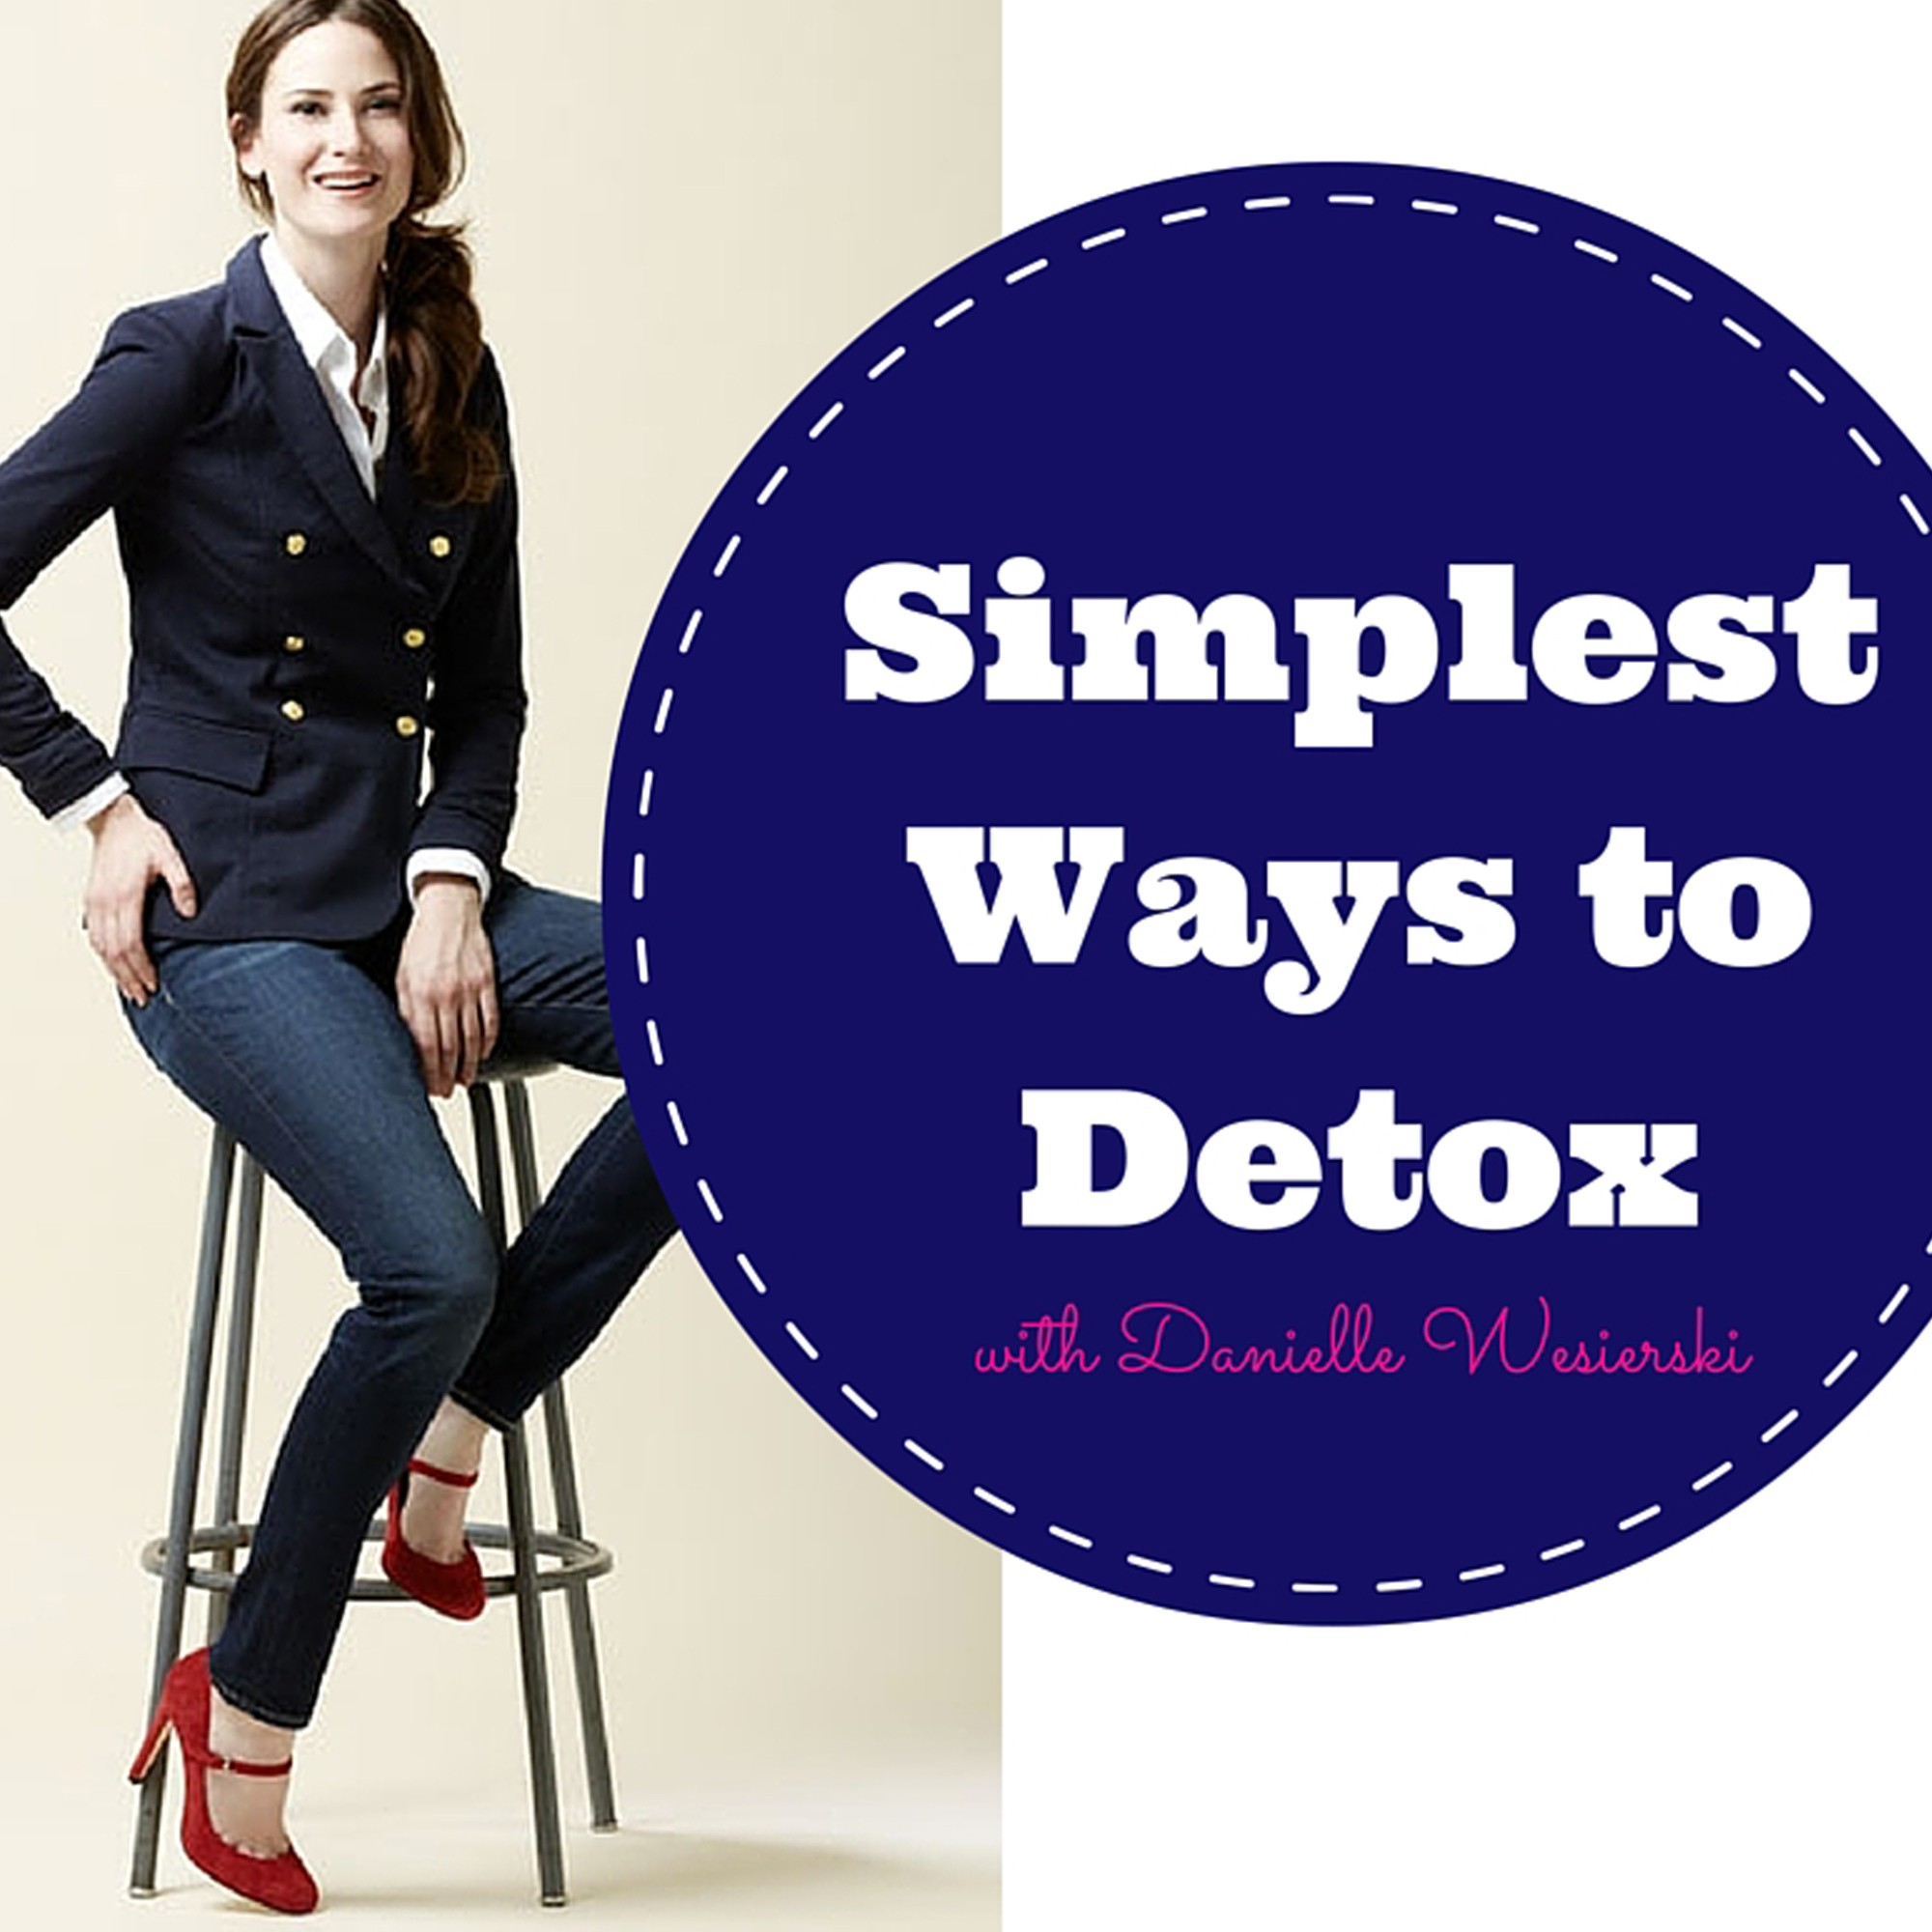 Simplest Ways to Detox with Danielle Wesierski image from http://goodnessme.ca/C20105-parent.jpg